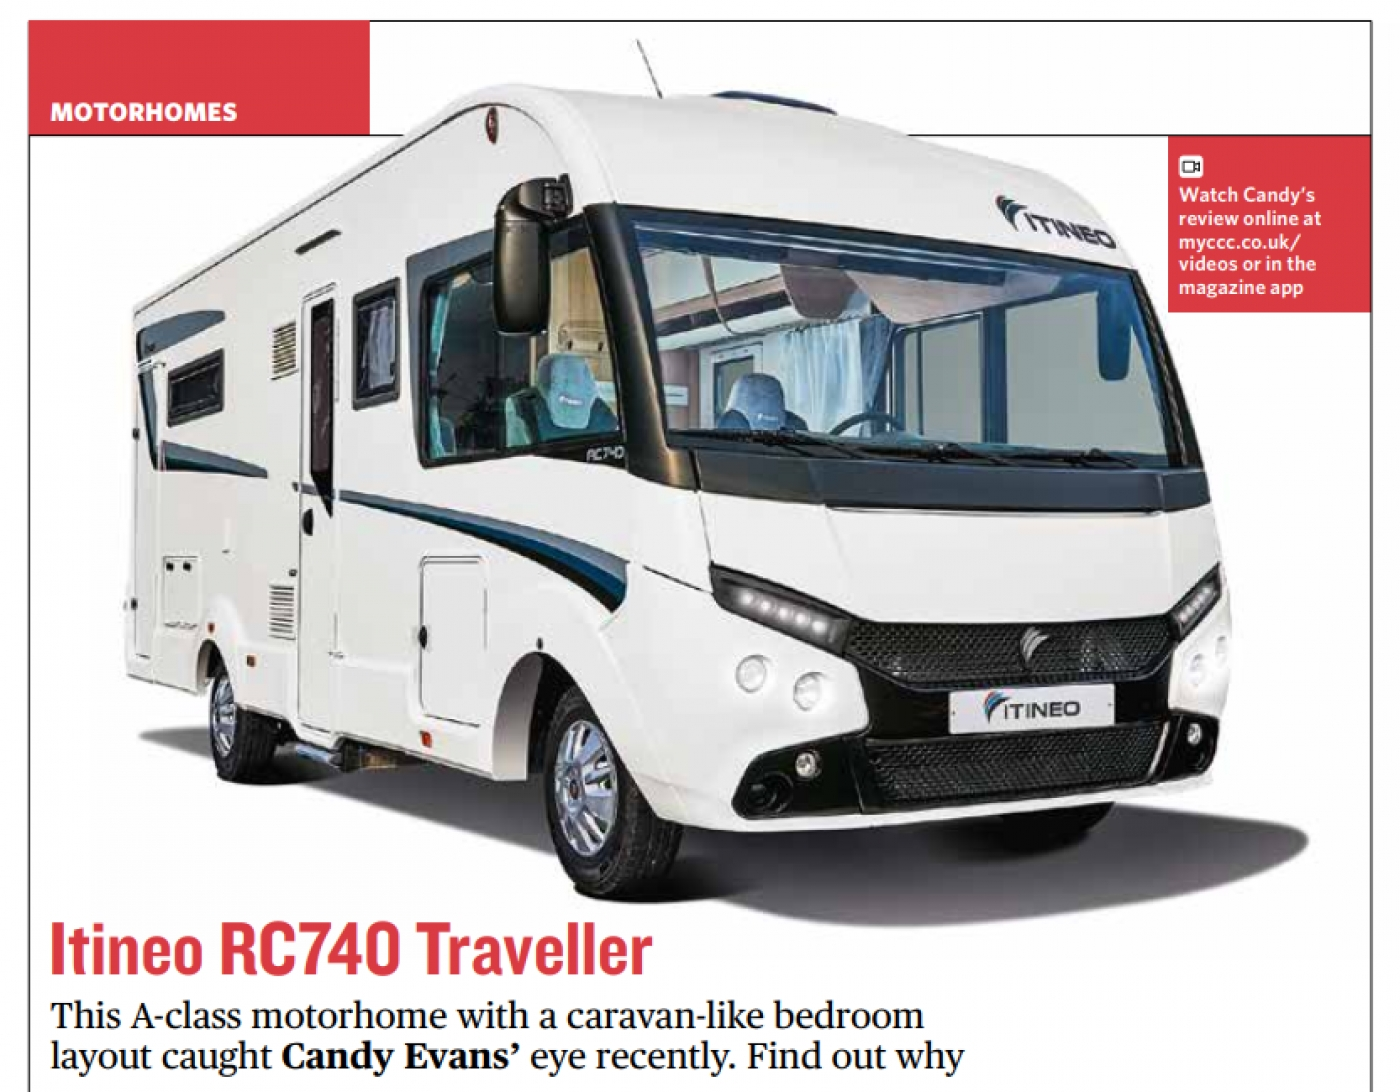 The ITINEO RC740 appears in the current issue of Camping